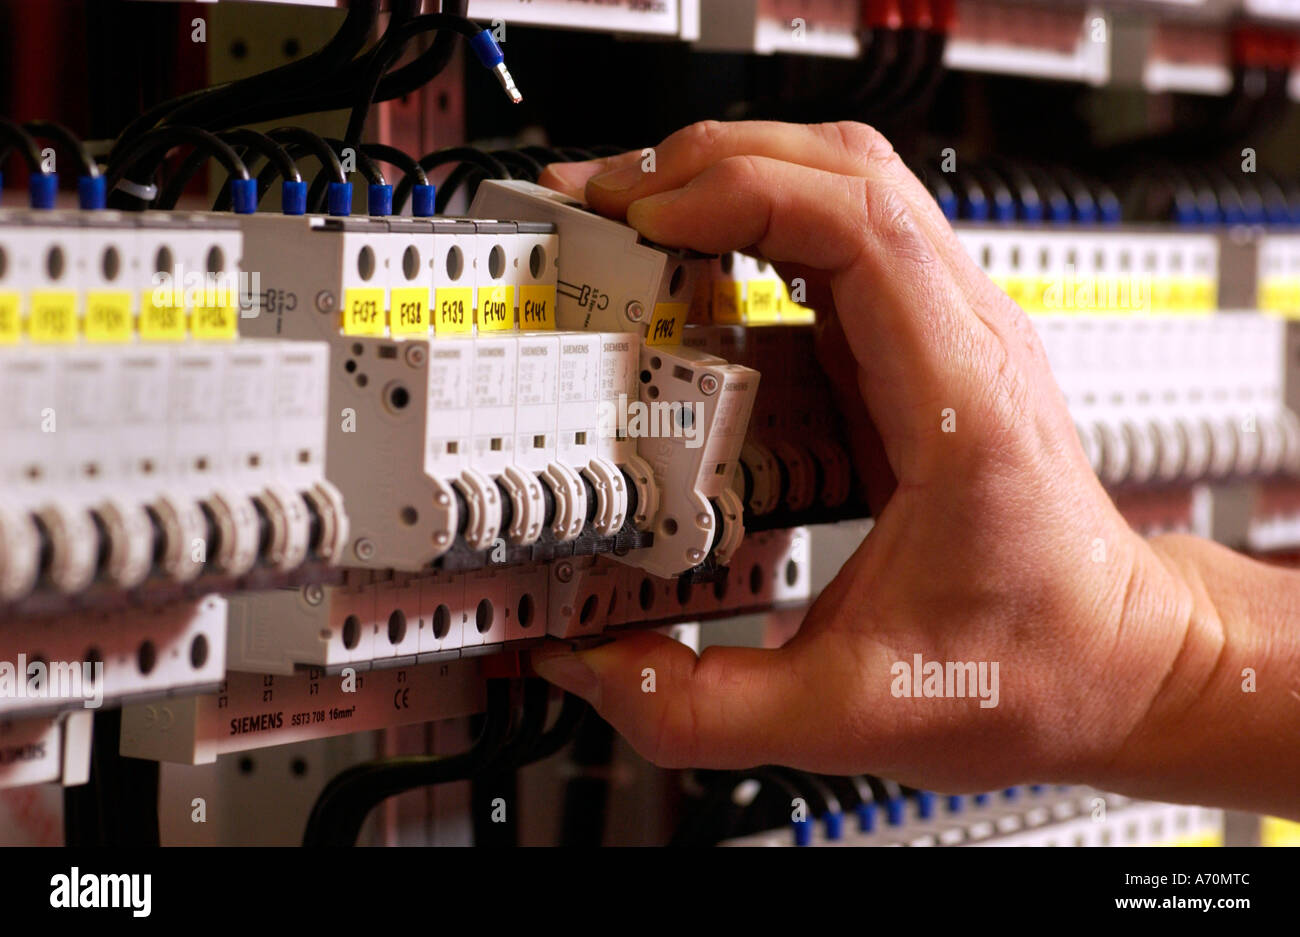 building of switchgears in a school installations of the current building of switchgears in a school installations of the current distributor fuse box electrical safety devices